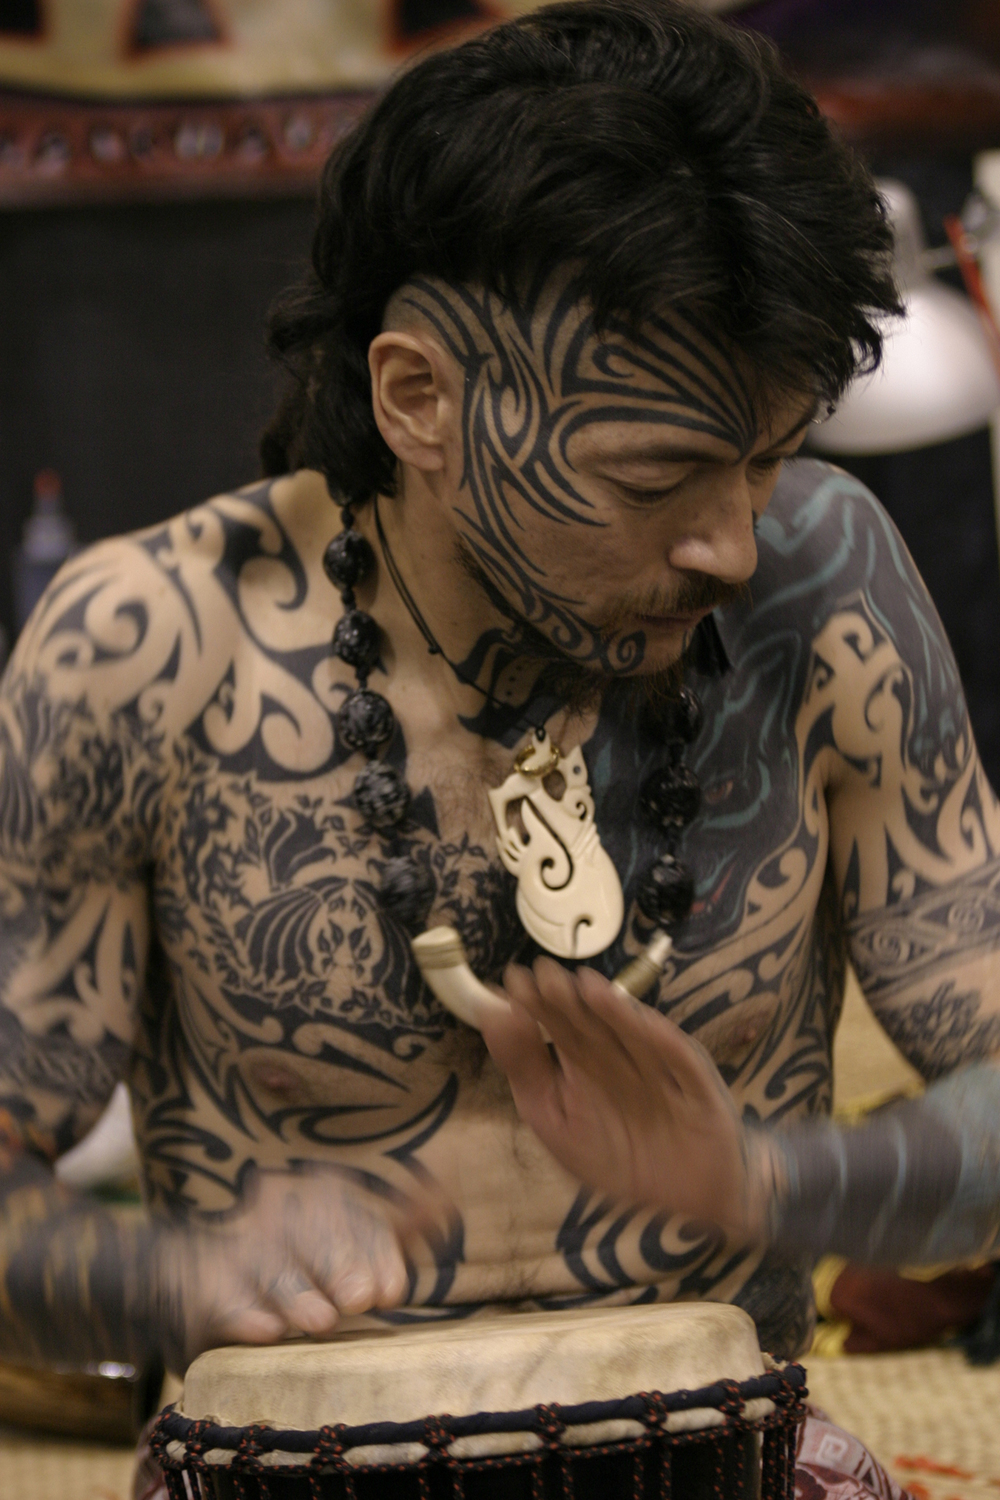 Tattoo_Expo045.JPG